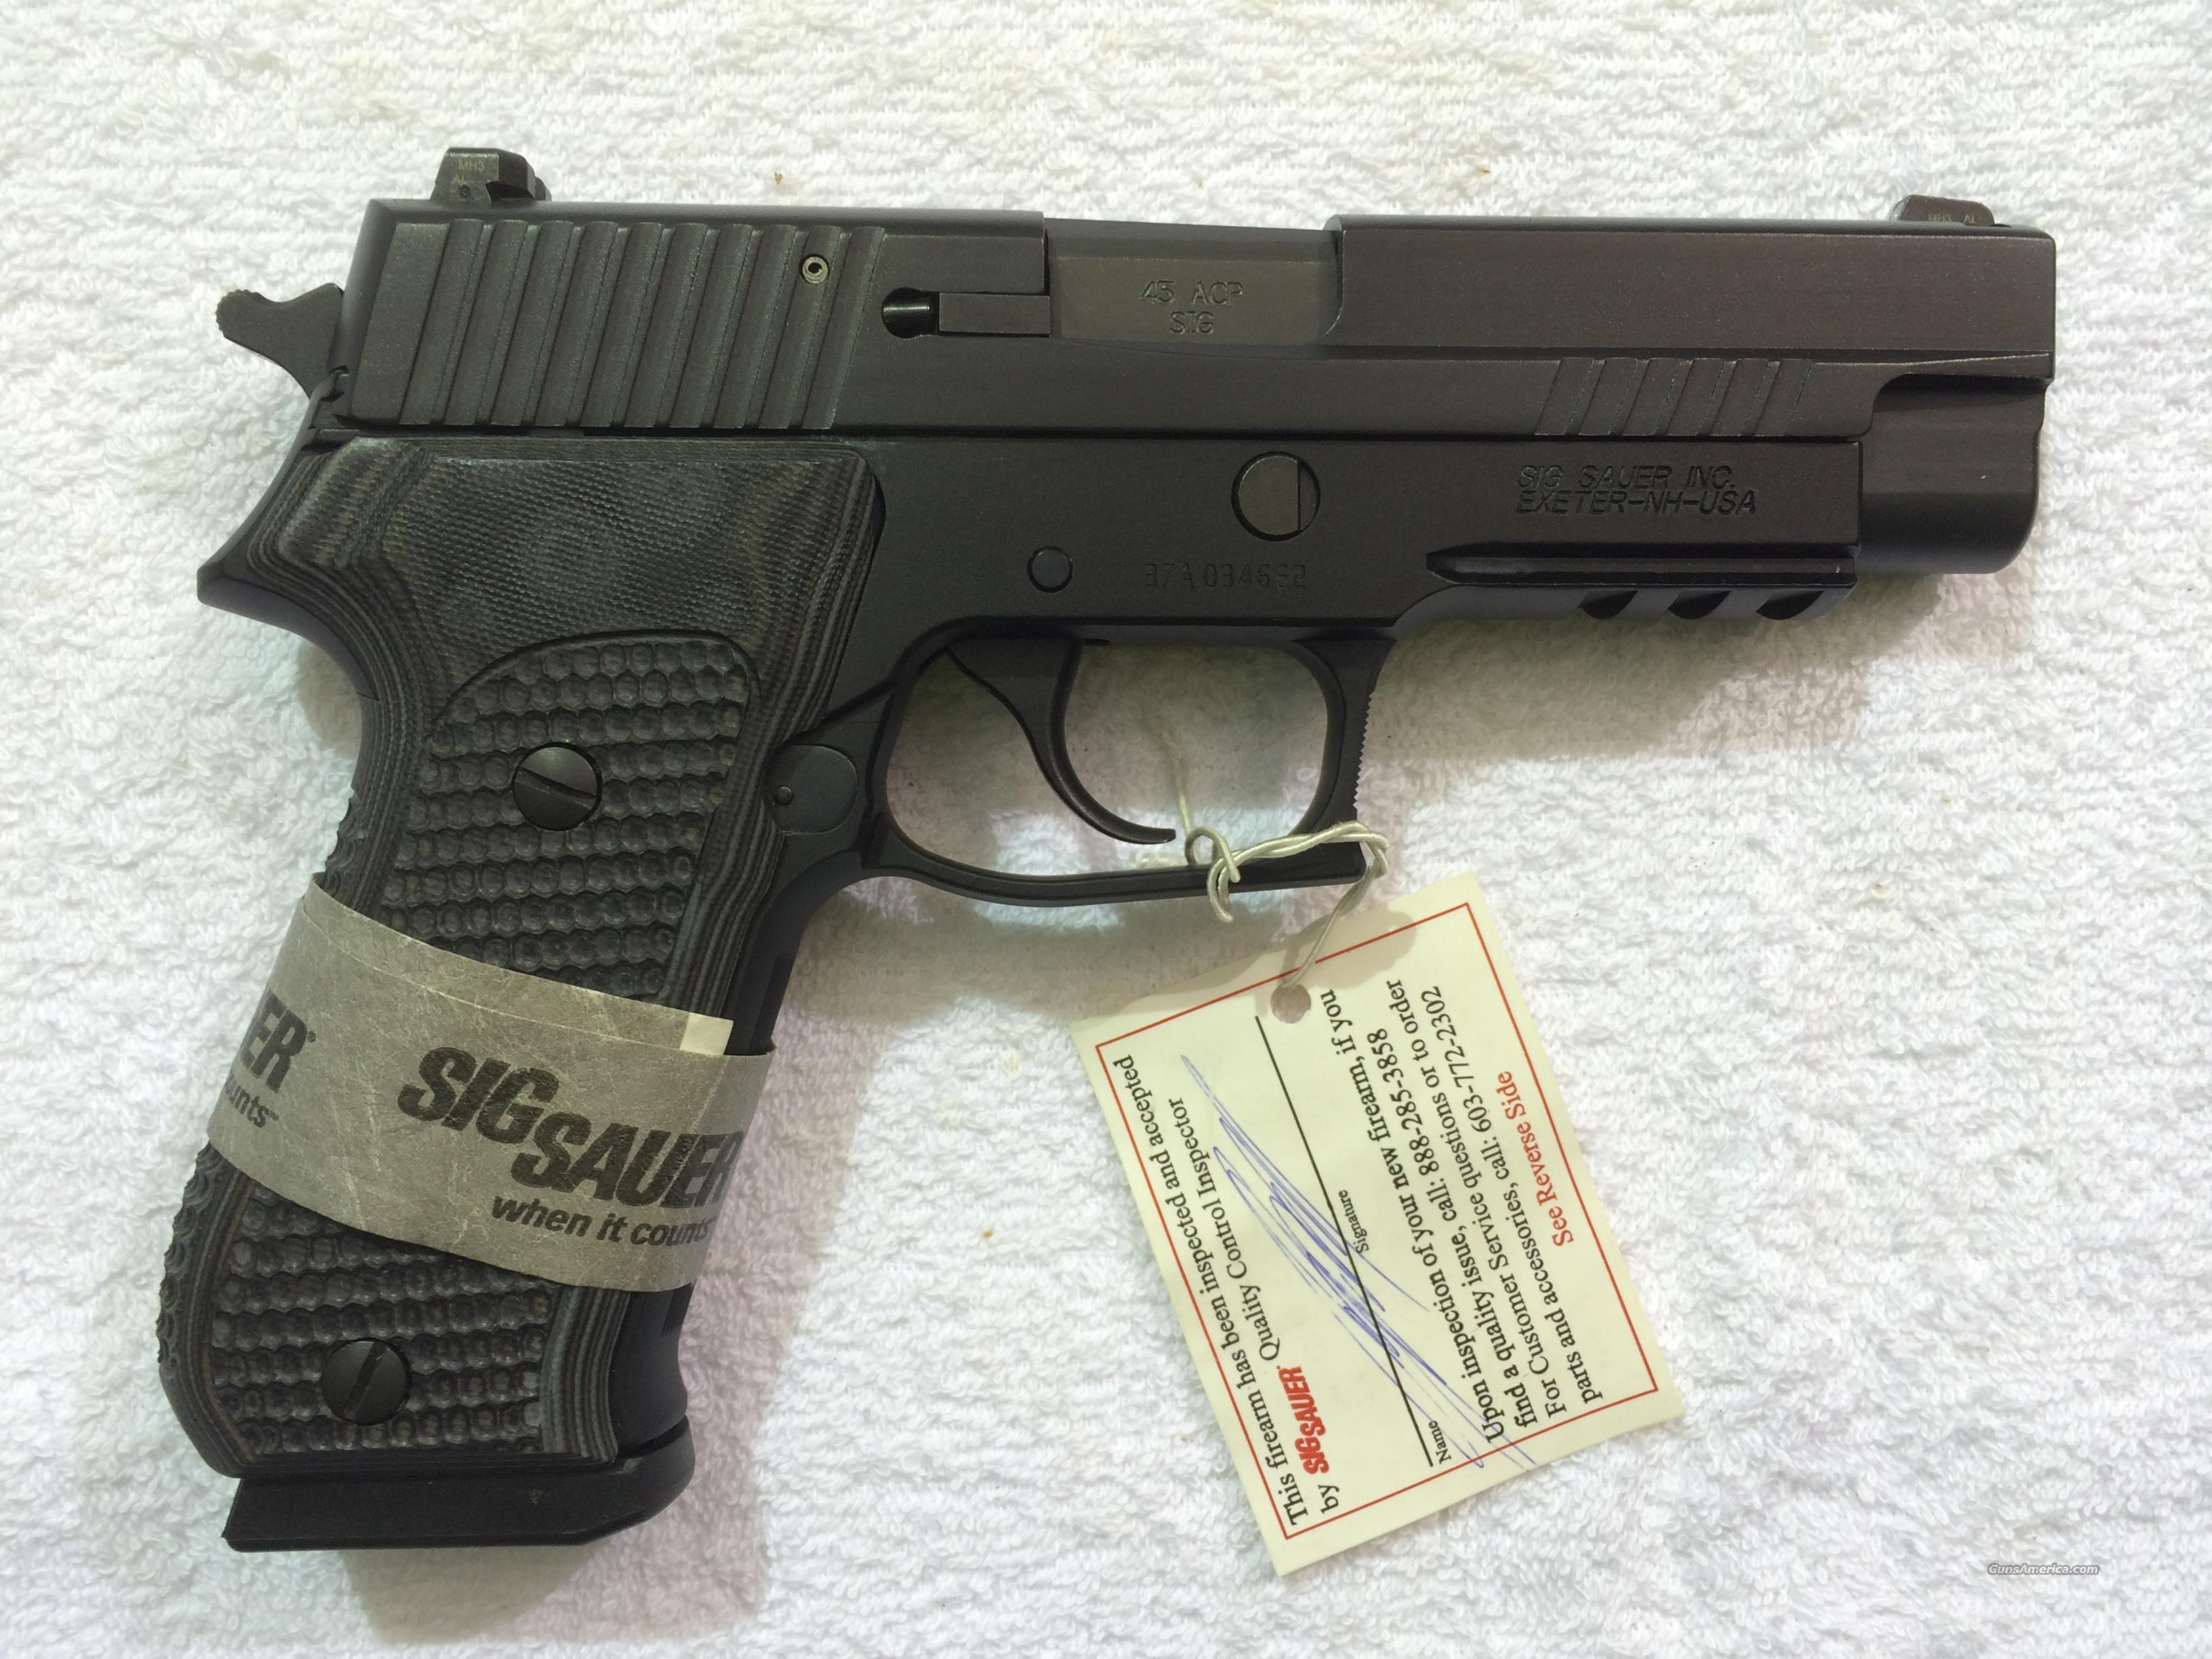 Sig Sauer P220 Extreme  Guns > Pistols > Sig - Sauer/Sigarms Pistols > P220